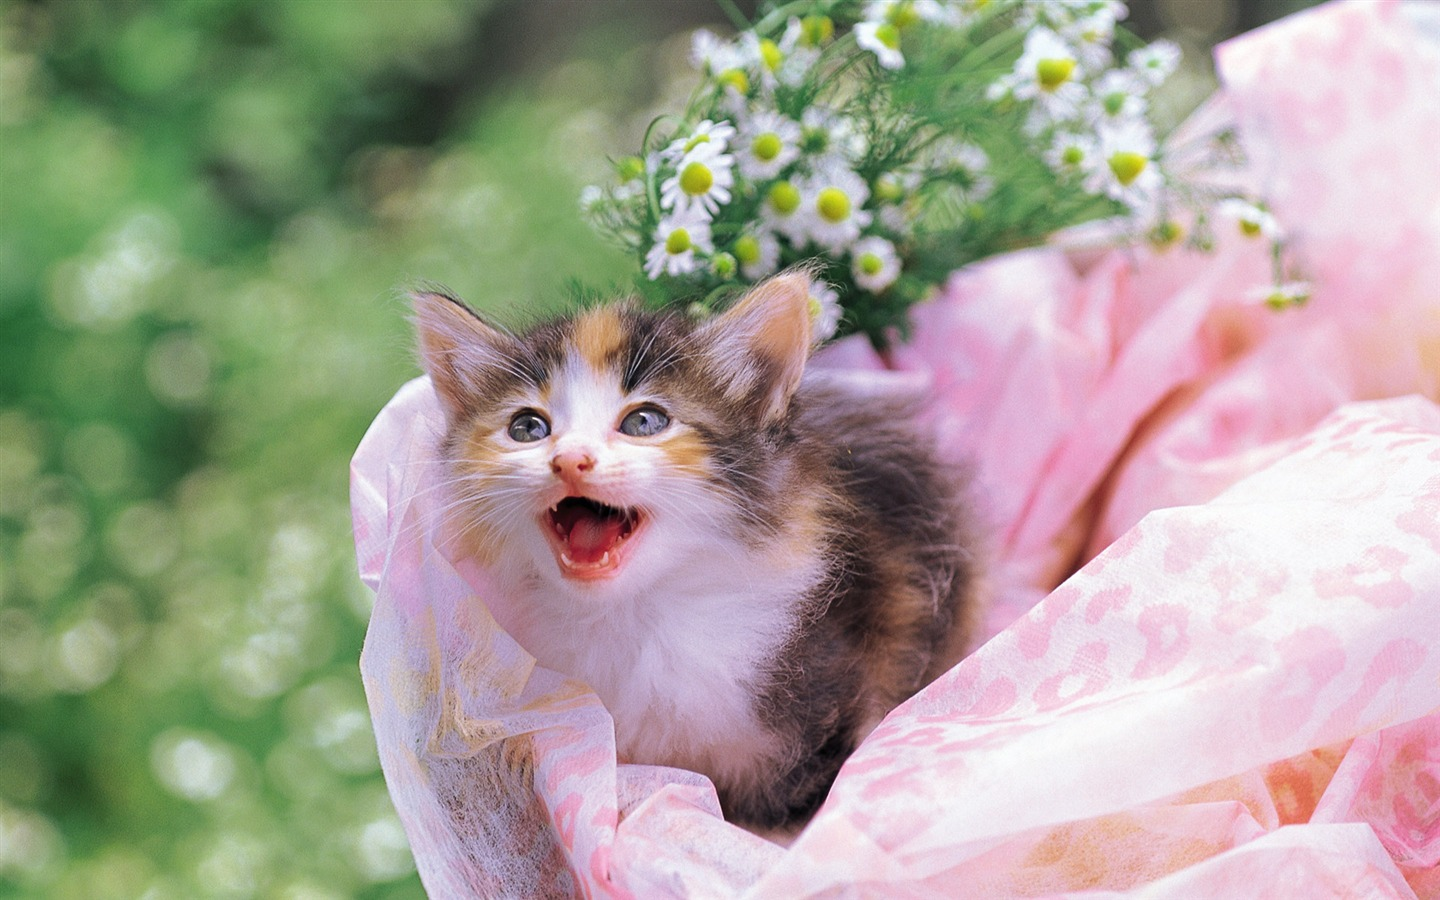 Cuddly kitten in flower basket - 1440x900 wallpaper download